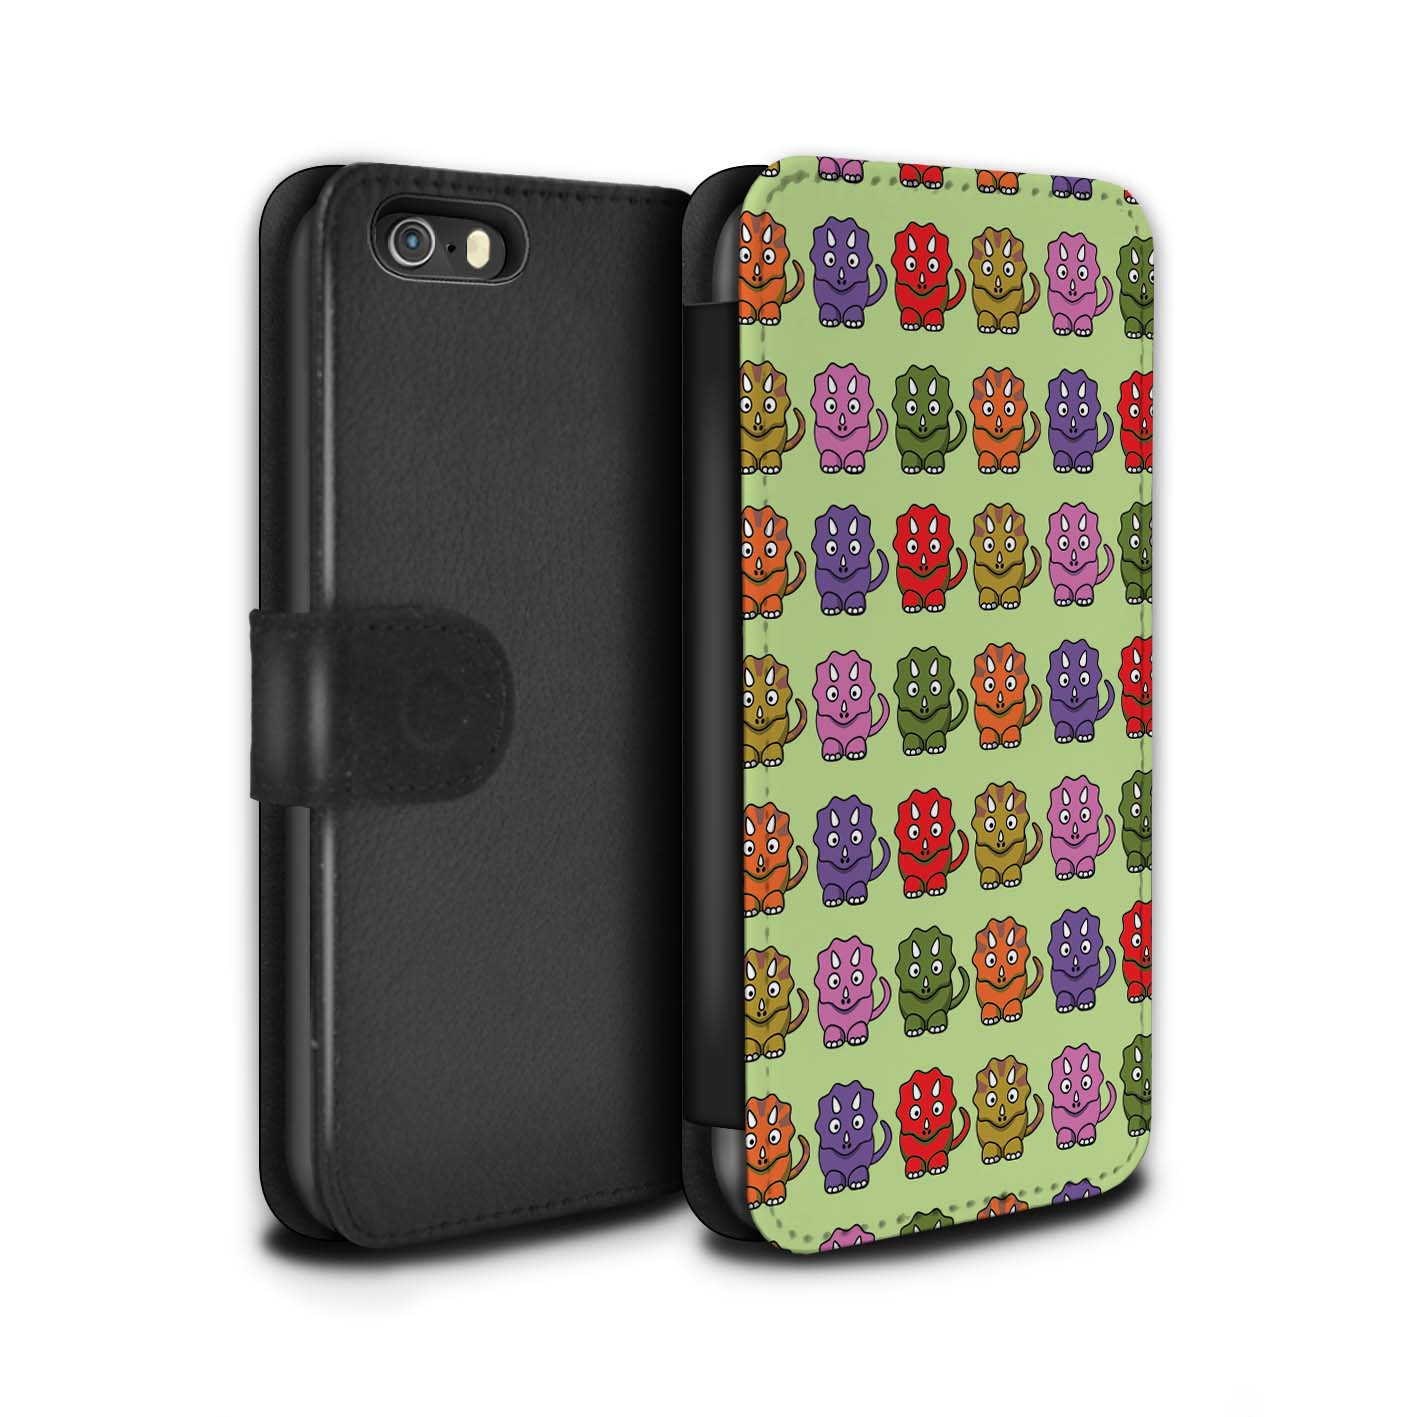 STUFF4-PU-Leather-Case-Cover-Wallet-for-Apple-iPhone-SE-Cartoon-Dinosaurs